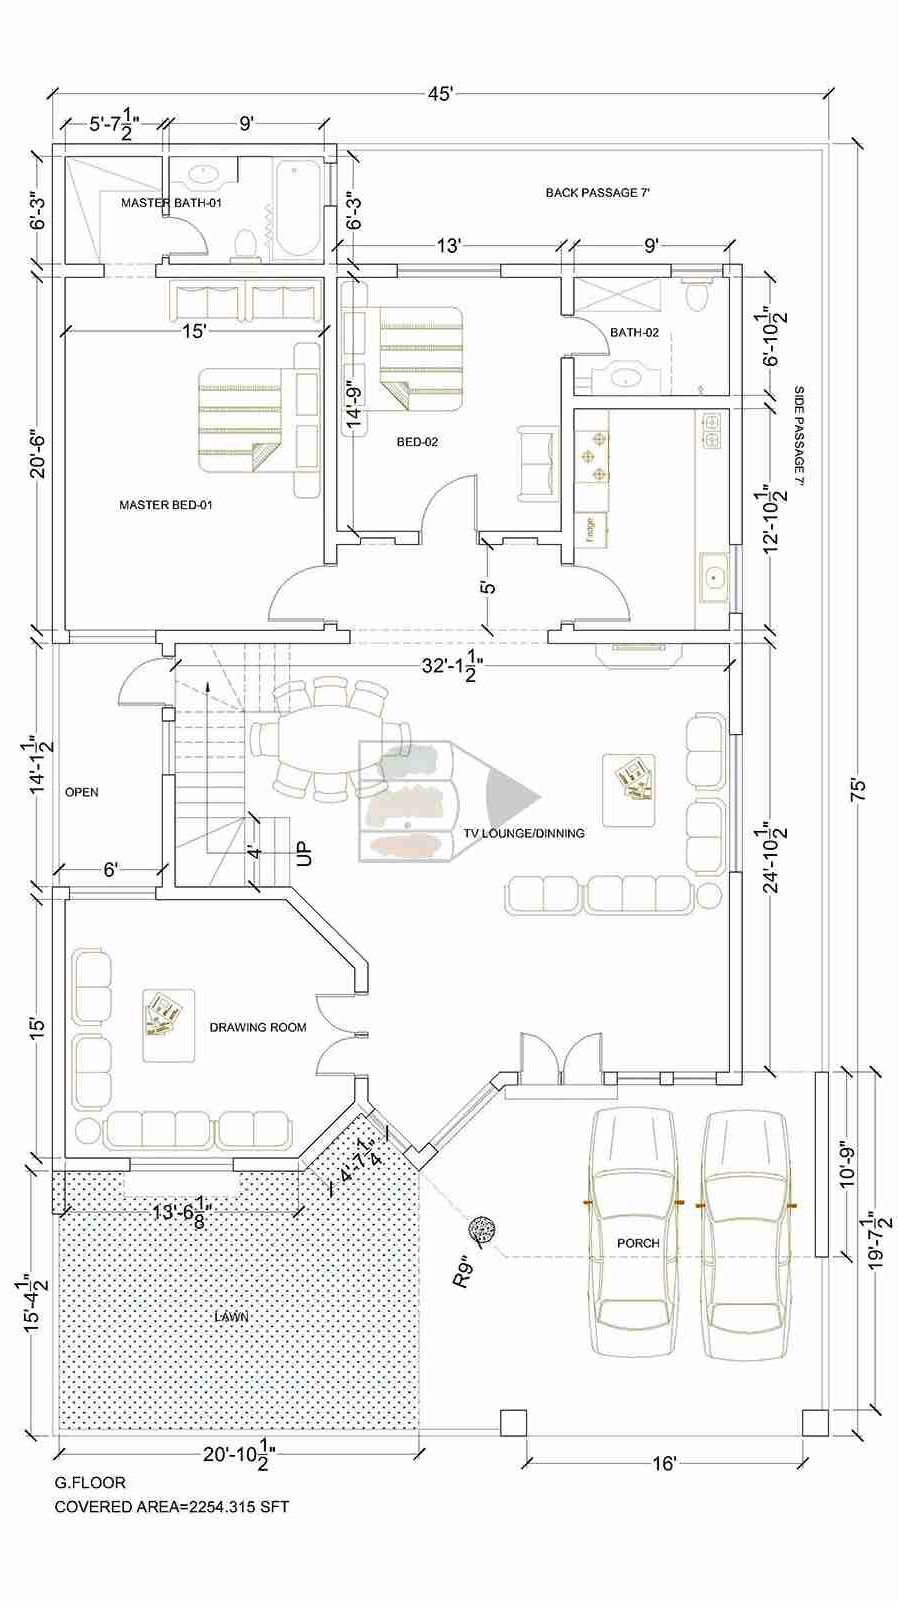 Pin By Alagboso Ifeanyichukwu On Floor Plans Pakistan Model House Plan Duplex House Plans House Front Design